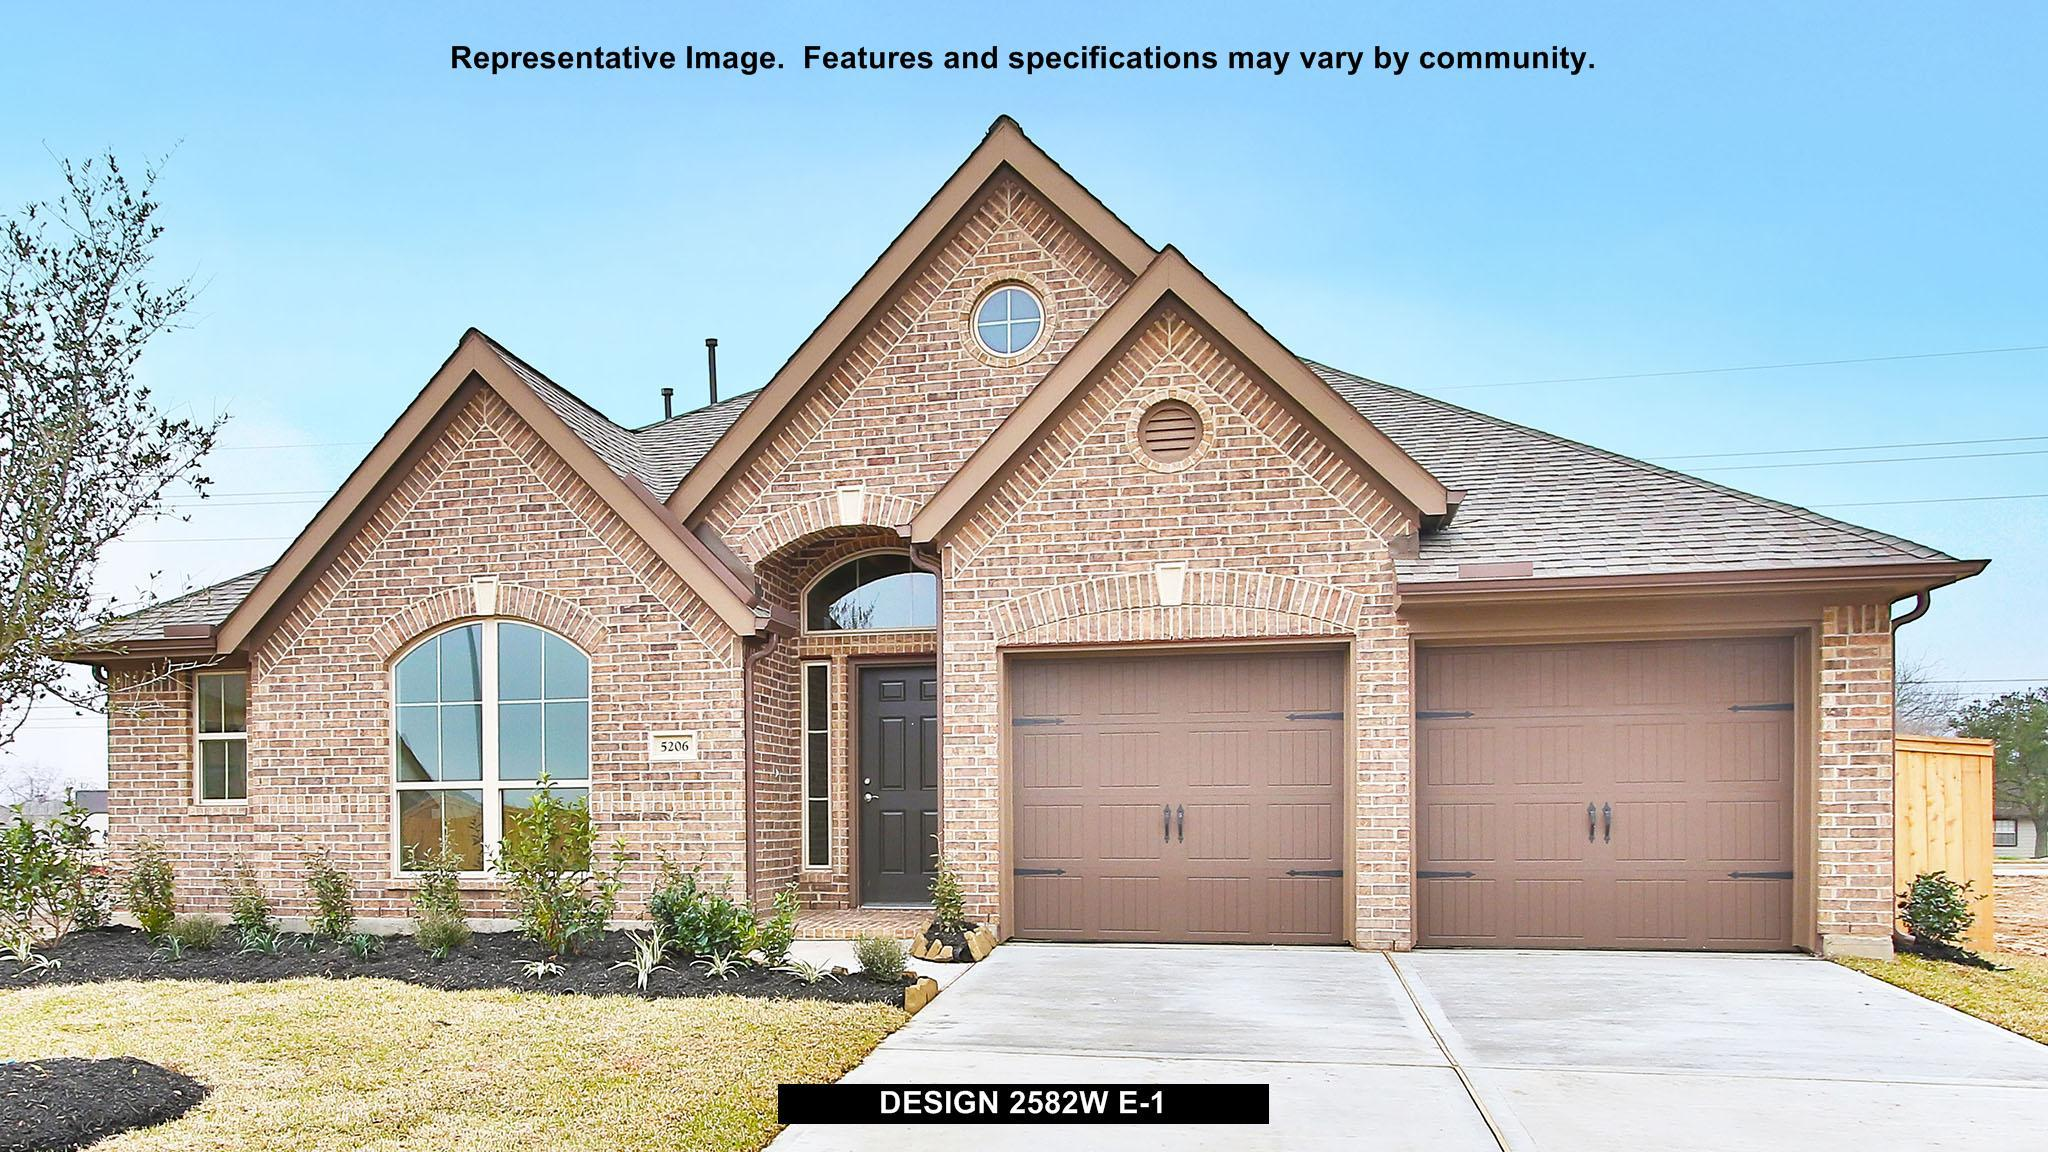 2582W - Cypress Creek Lakes 60': Cypress, TX - Perry Homes